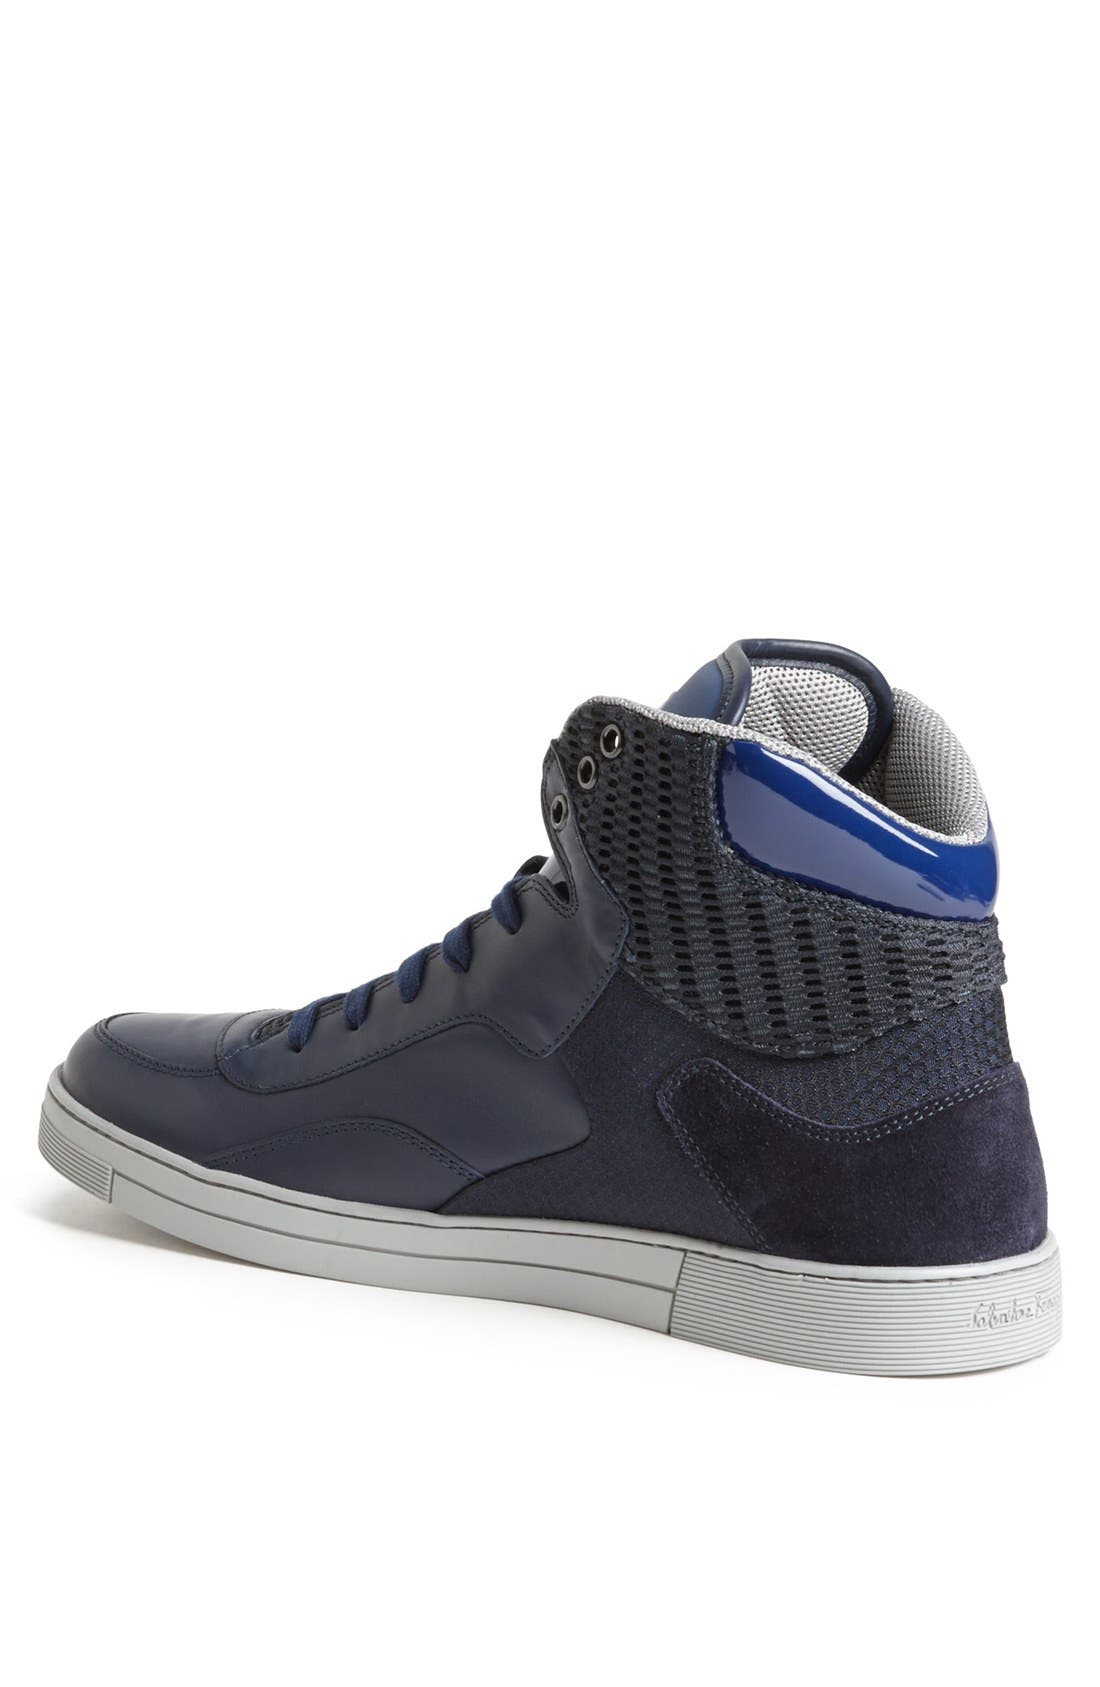 Alternate Image 2  - Salvatore Ferragamo 'Robert' High Top Sneaker